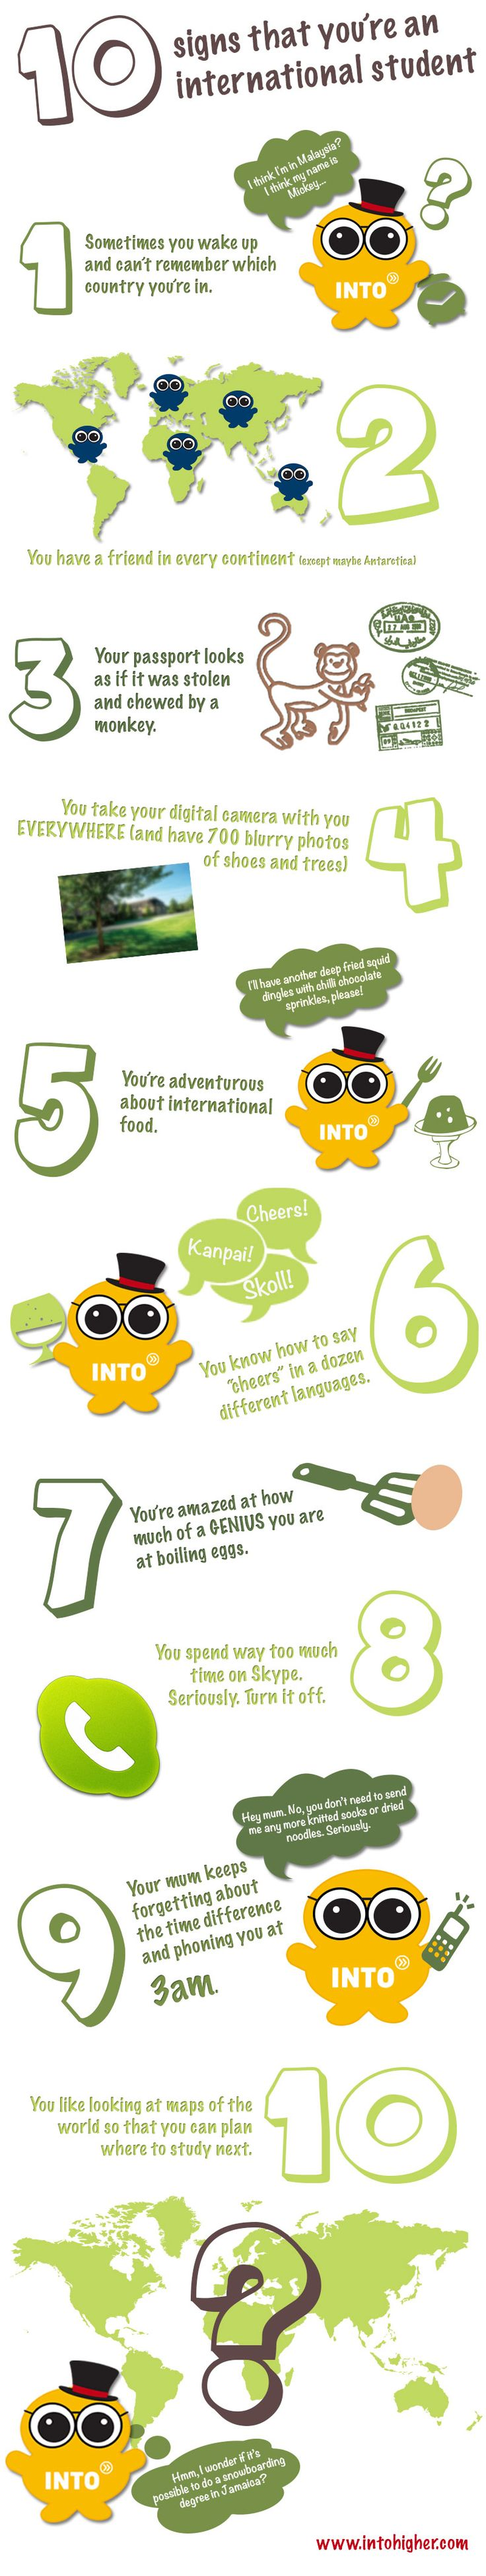 10 signs that you're an international student. #infographic #studyabroad